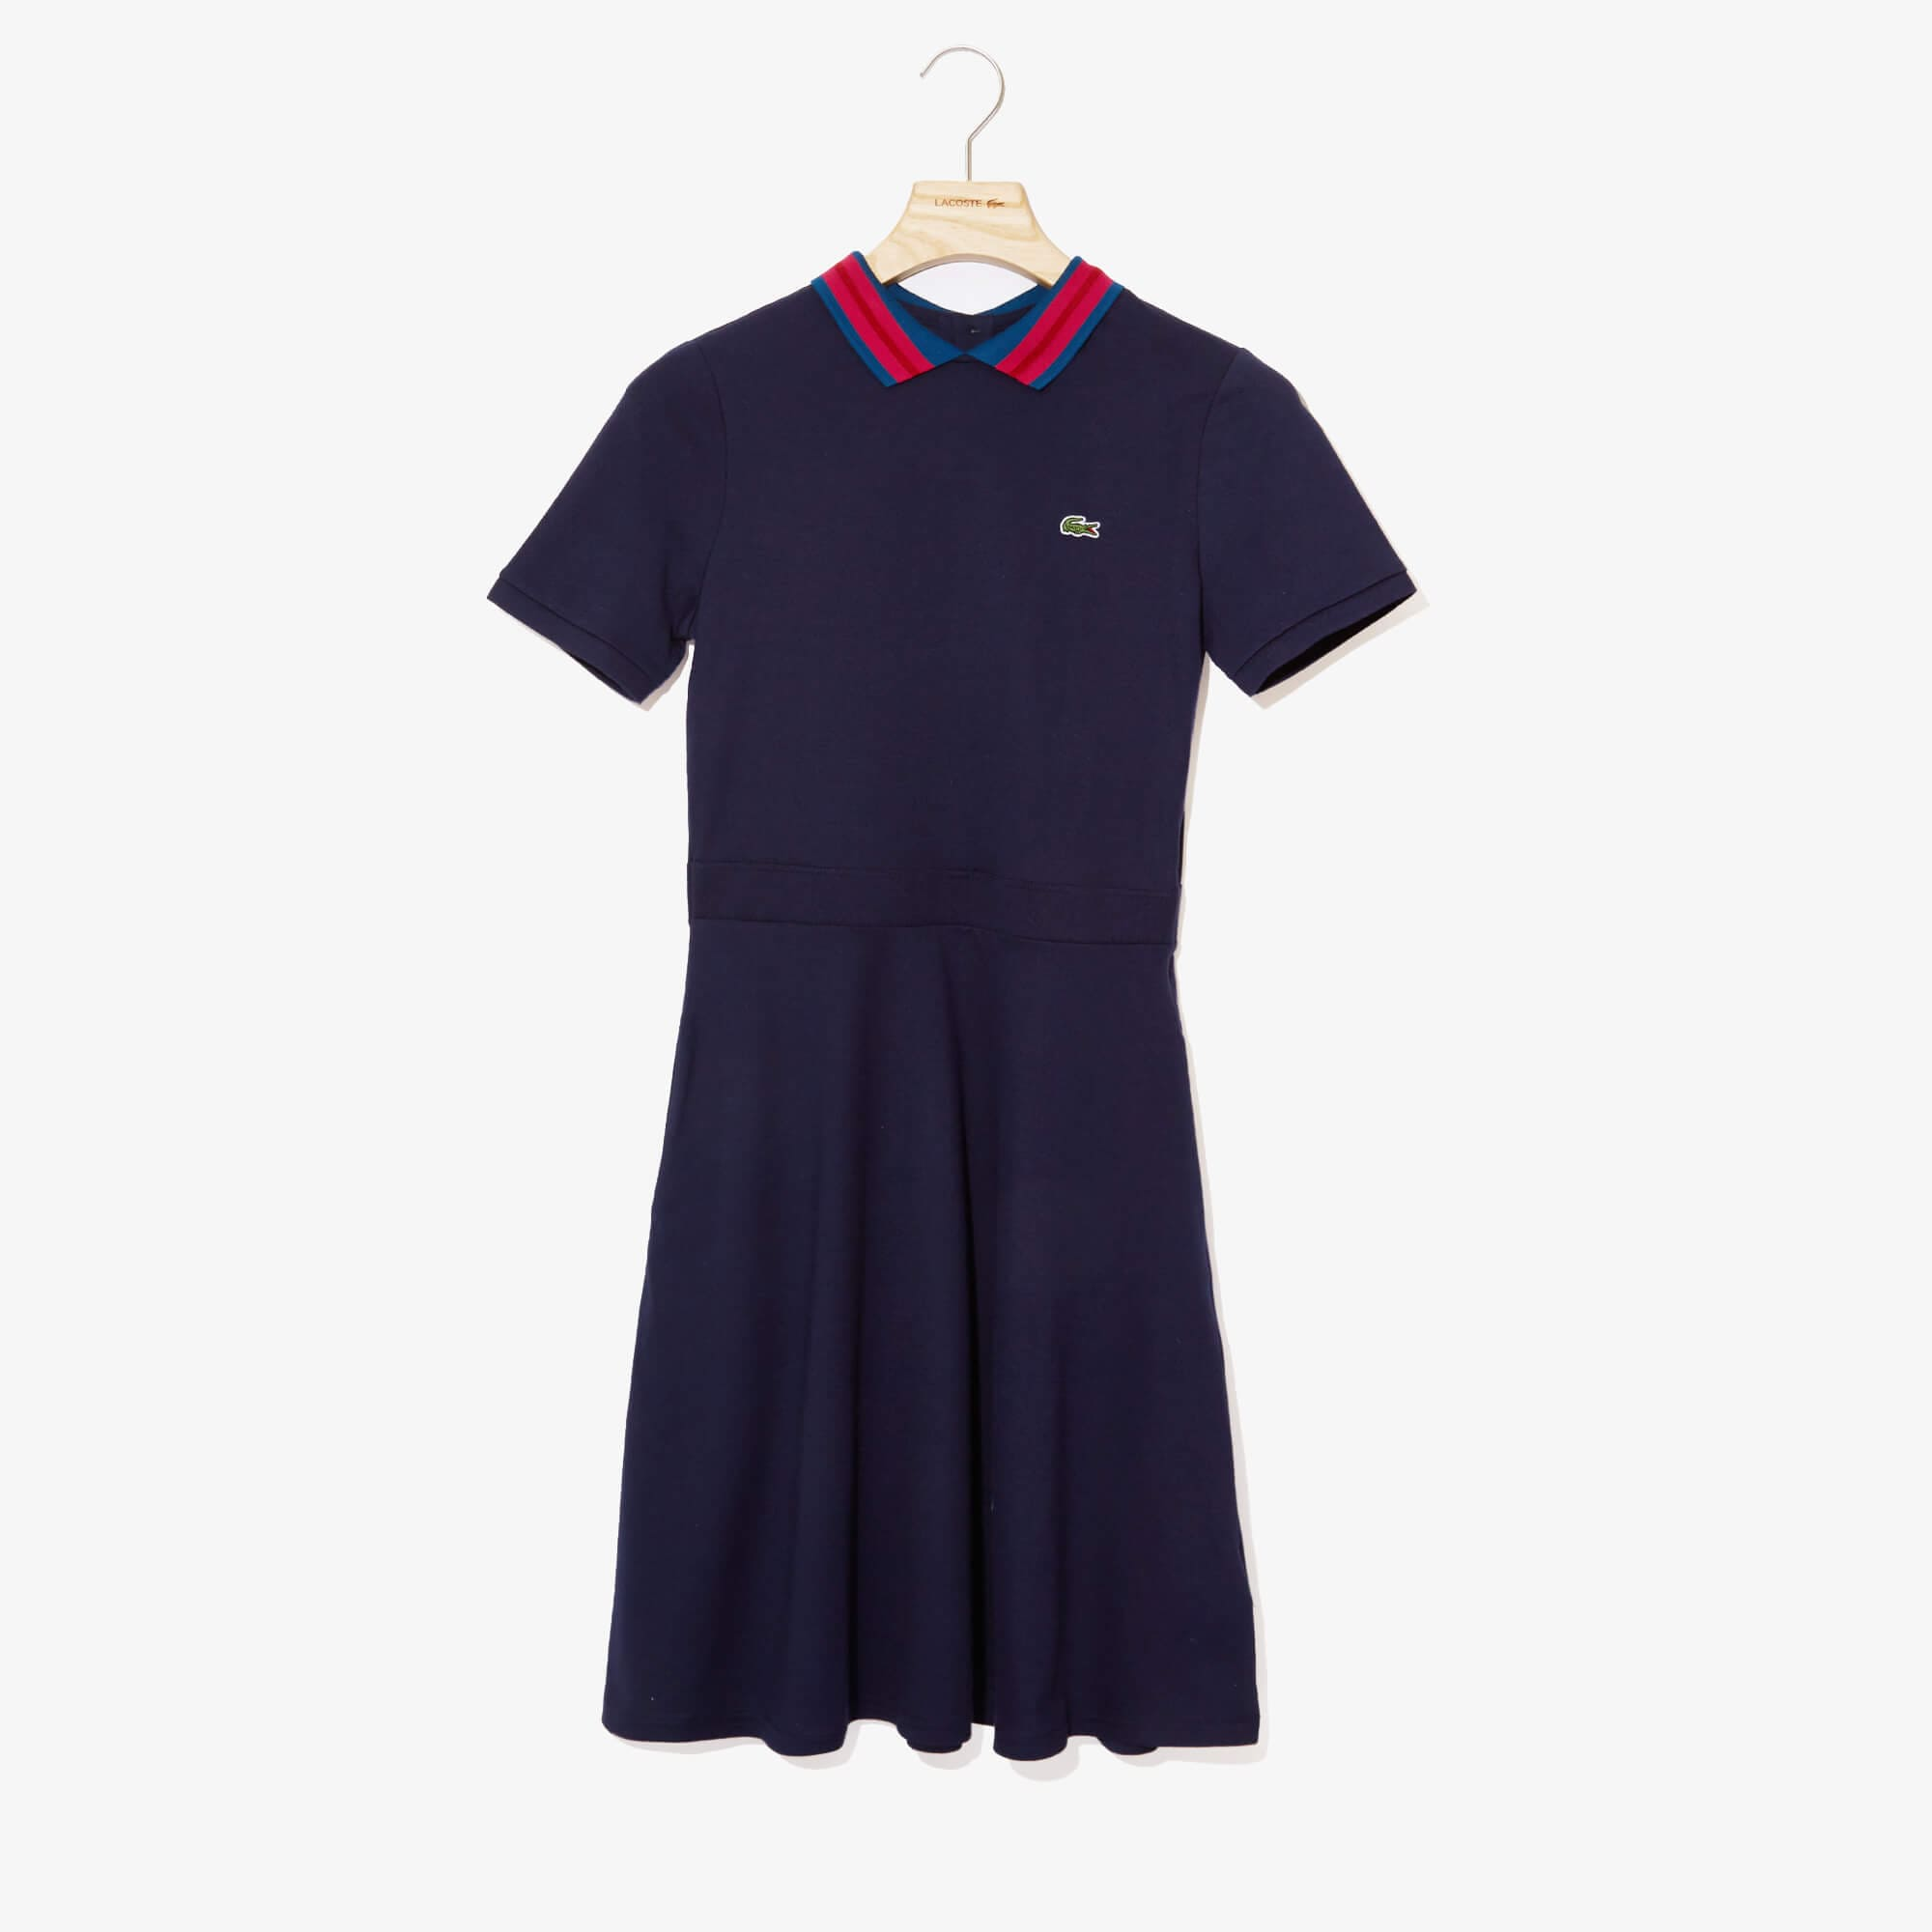 Lacoste Womens S//S Striped Cotton Pique Classic Polo Dress